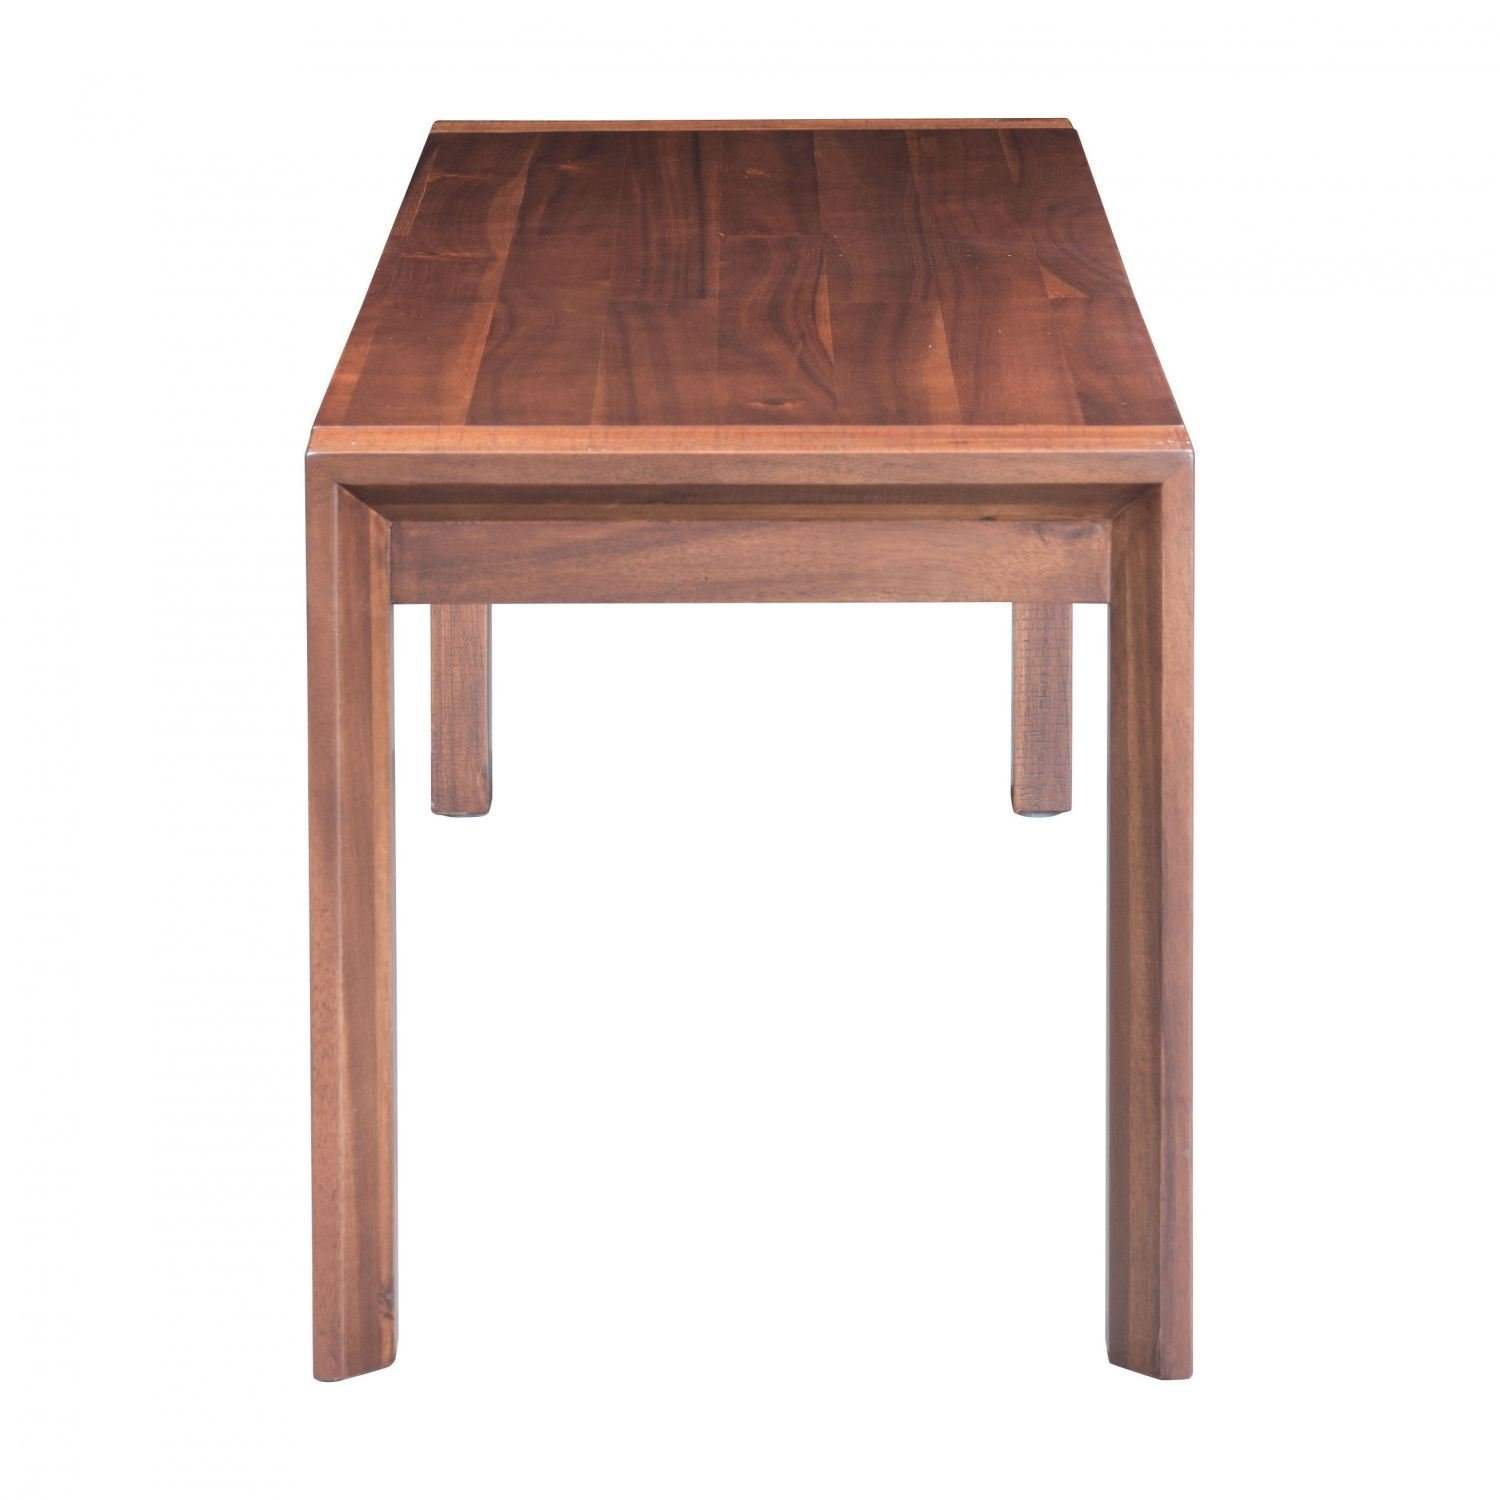 Zuo Perth 4 Perth End Table Chestnut Bedroom Furniture Stores Perth Zuo Modern Perth End Table